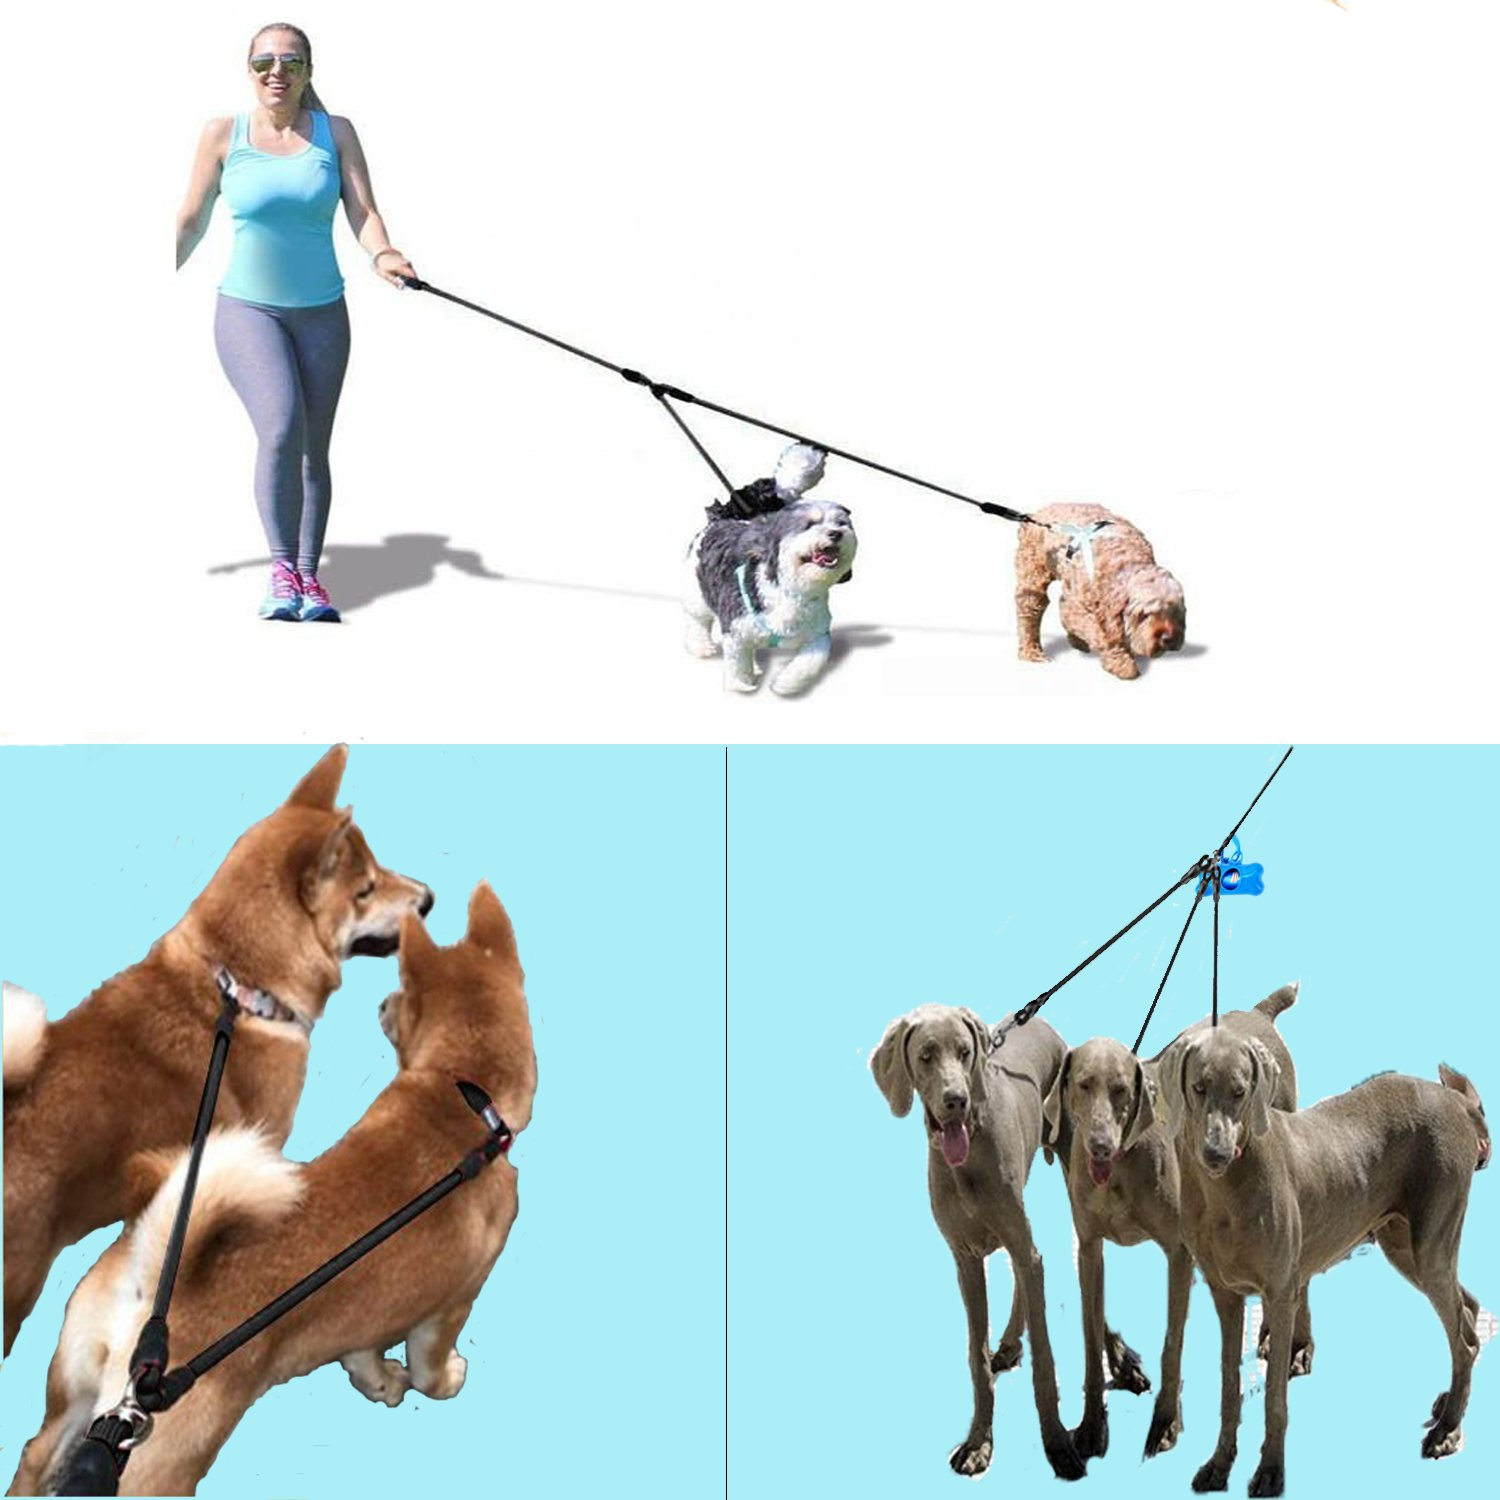 Heavy Duty Dual Dog Leash /Triple Dog Leash,360°Swivel No Tangle Double Dog Walking Training Leash,2-way&3-way interchangeable Lead with Hand-protected Handle Waste Bag Dispenser for Two/Three Dogs by SonQueen (Image #8)